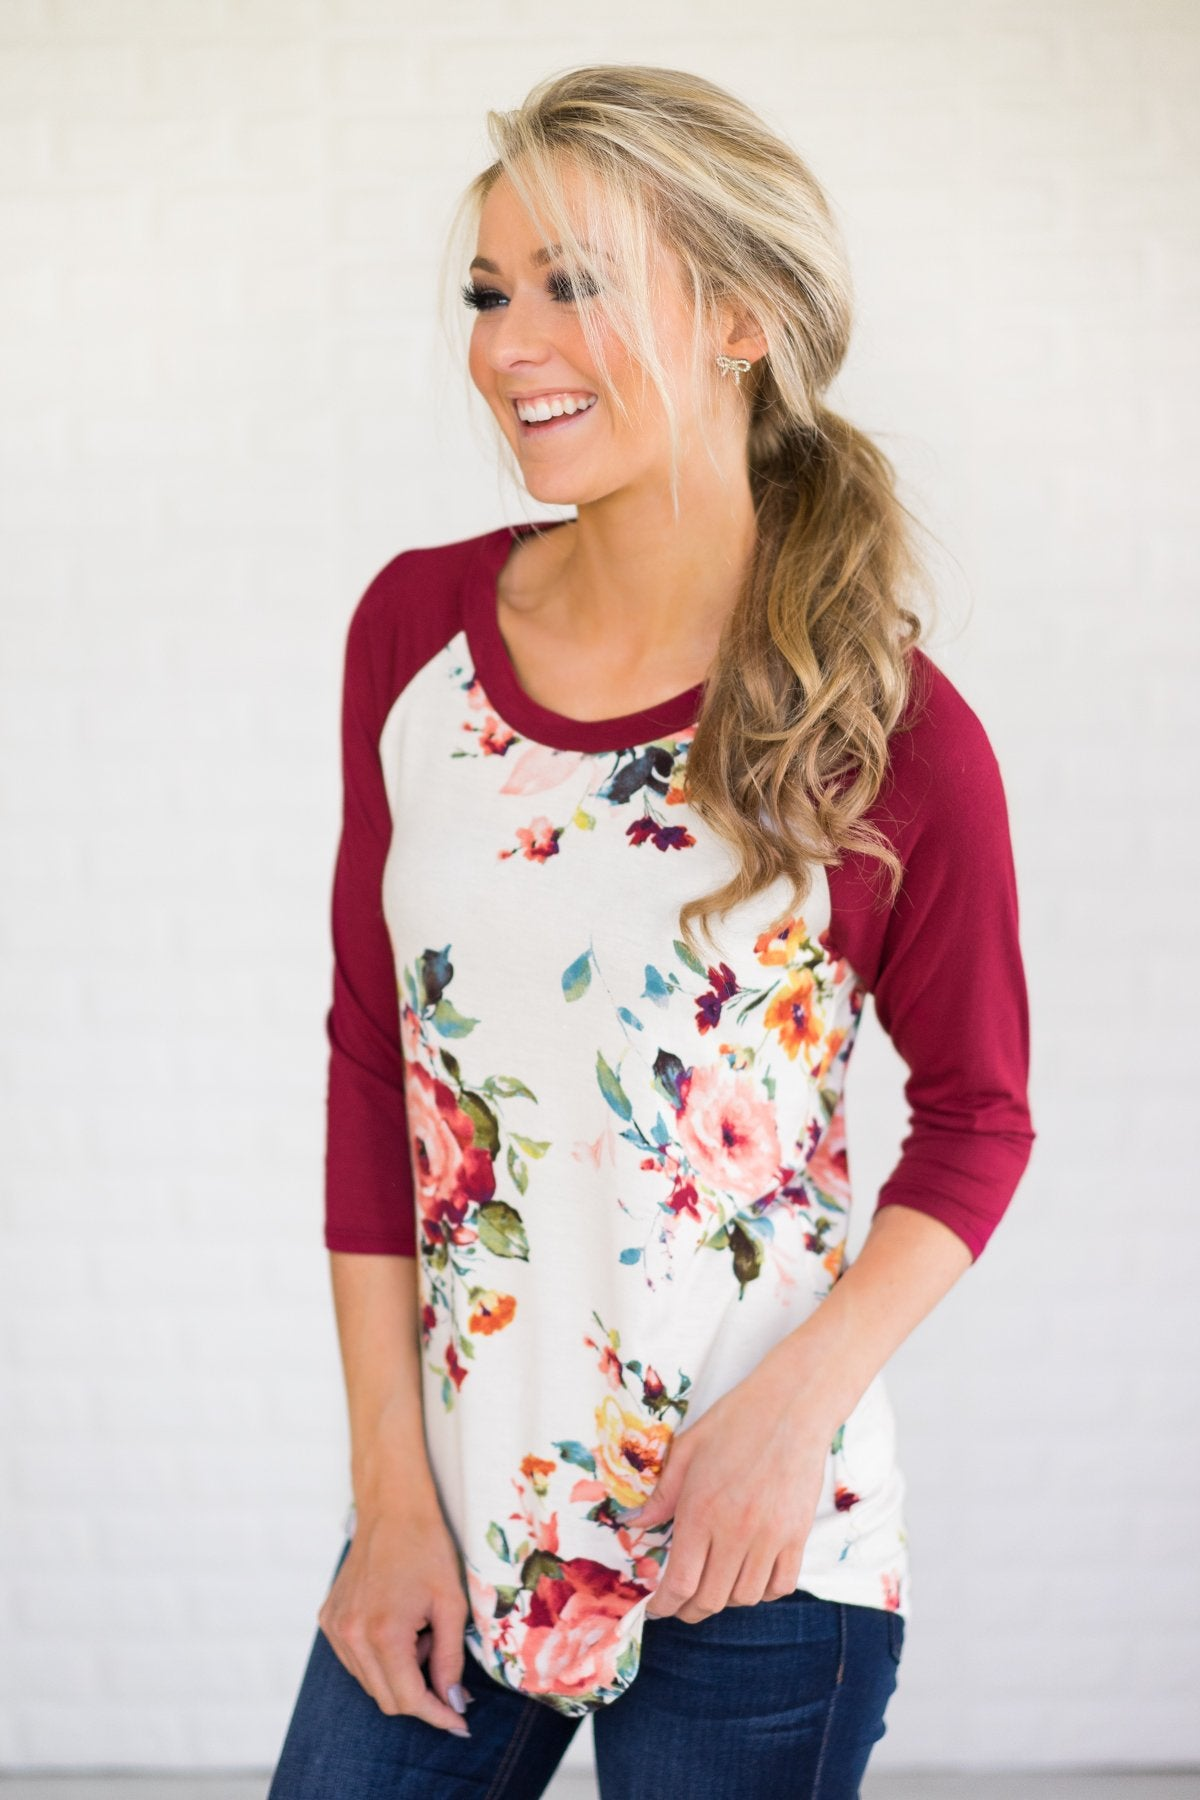 Dreams of You Floral Baseball Top - Burgundy